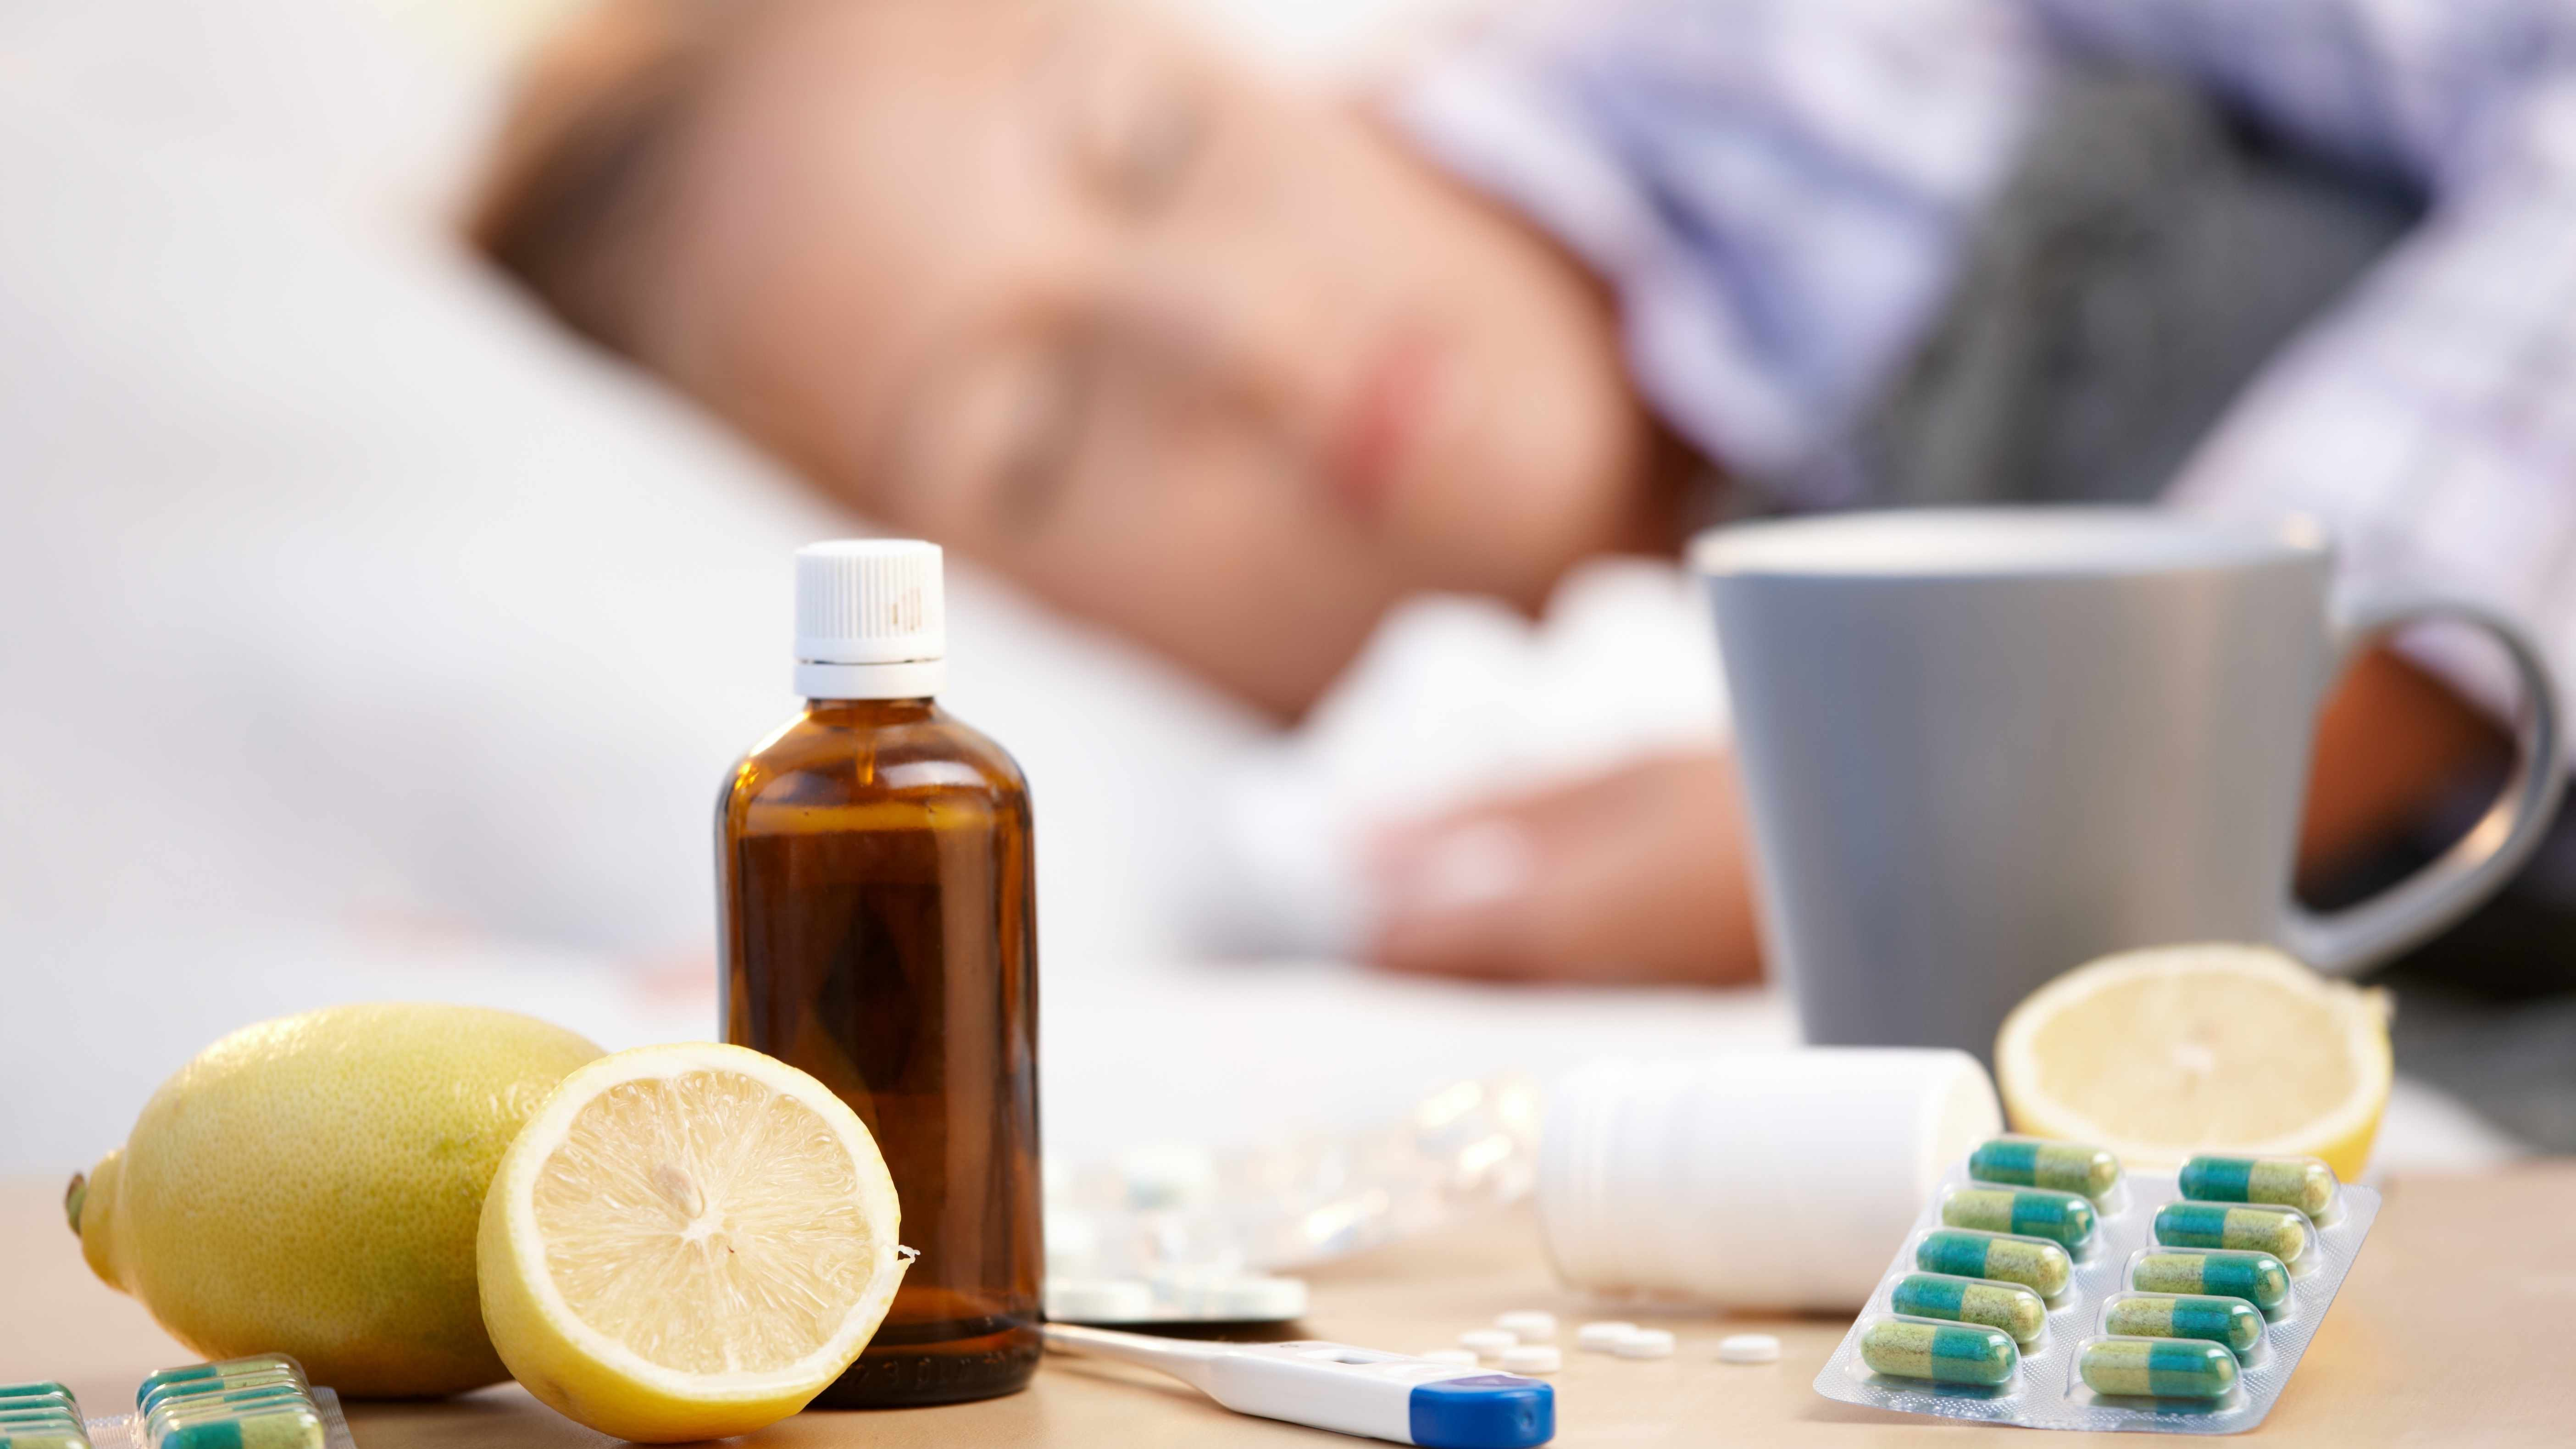 Home Remedies: Cold remedies that work – Mayo Clinic News Network